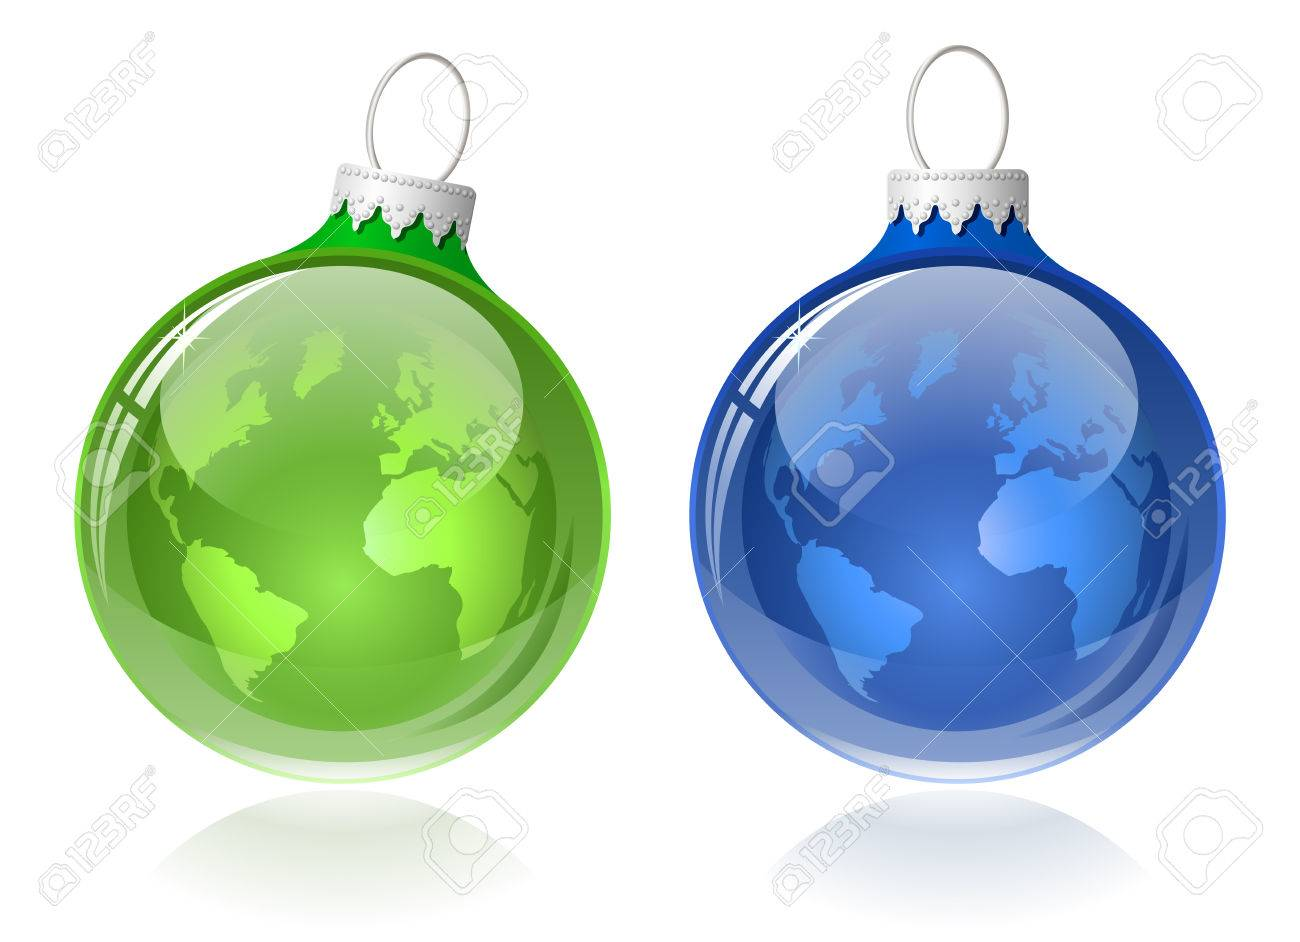 World globe christmas ornaments - Globe Christmas Balls Christmas Baubles With World Map Stock Vector 8307065